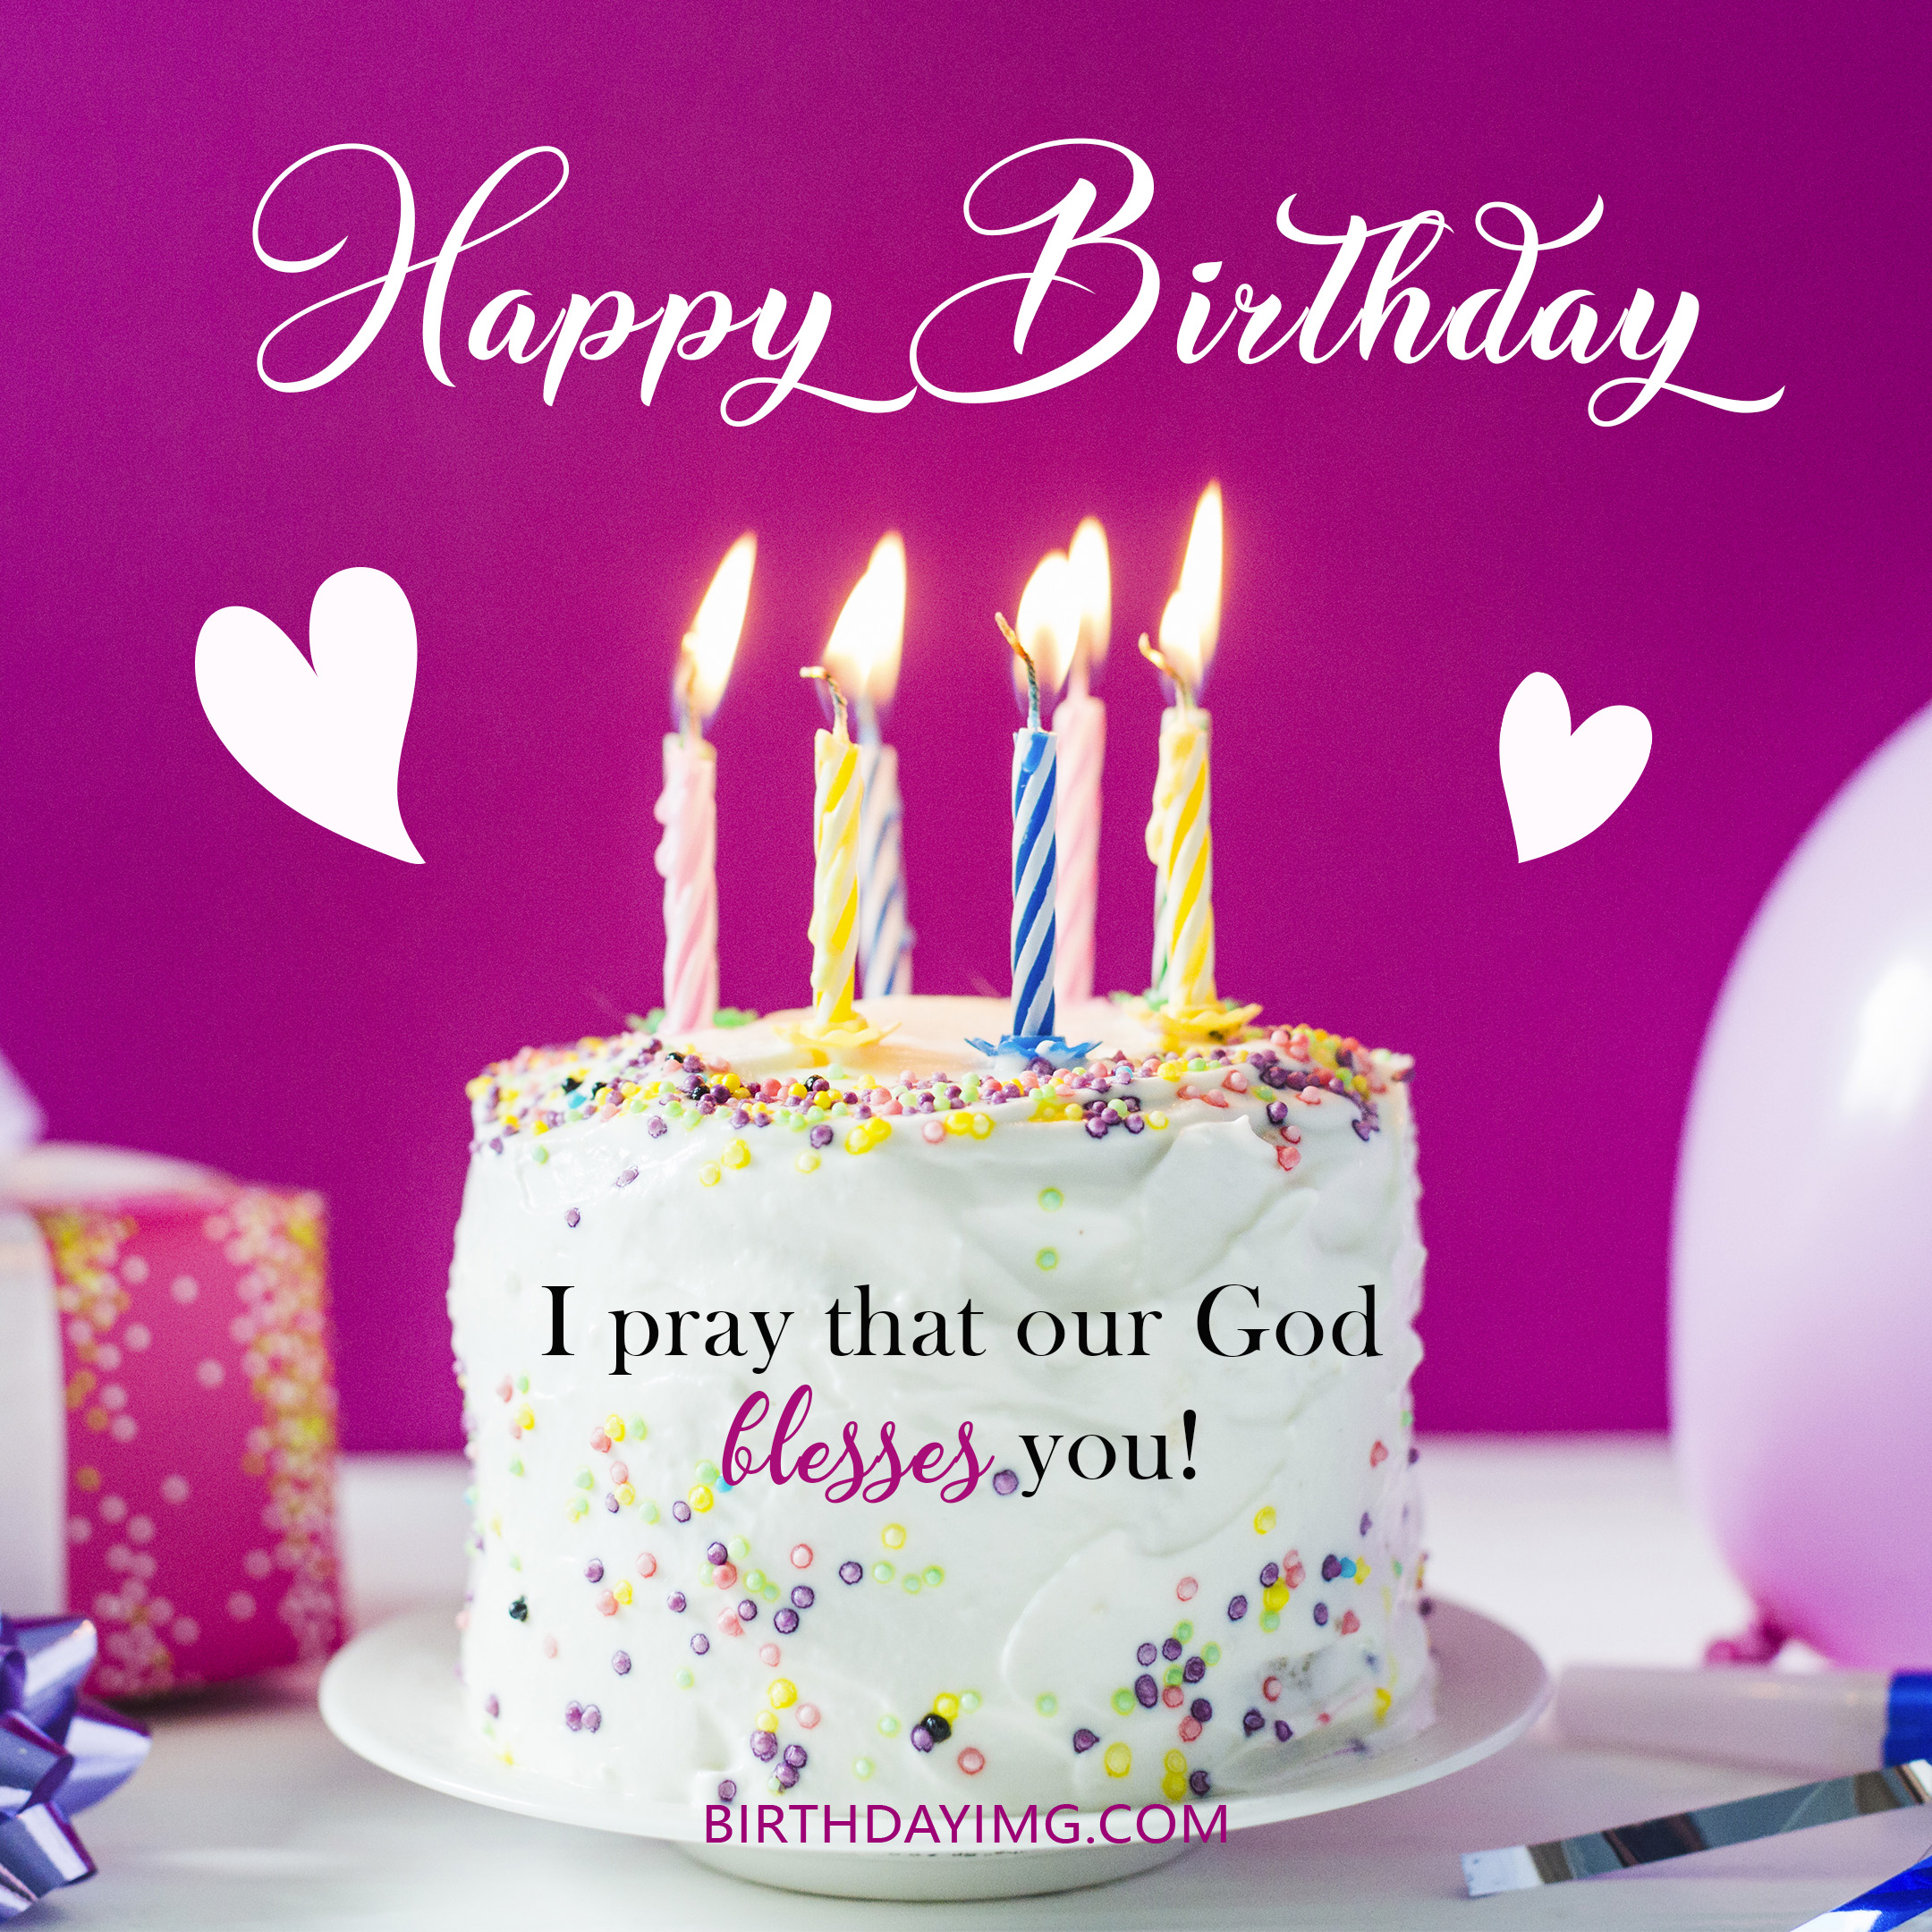 Free Happy Birthday Image With Blessings, Candles and Cake - birthdayimg.com